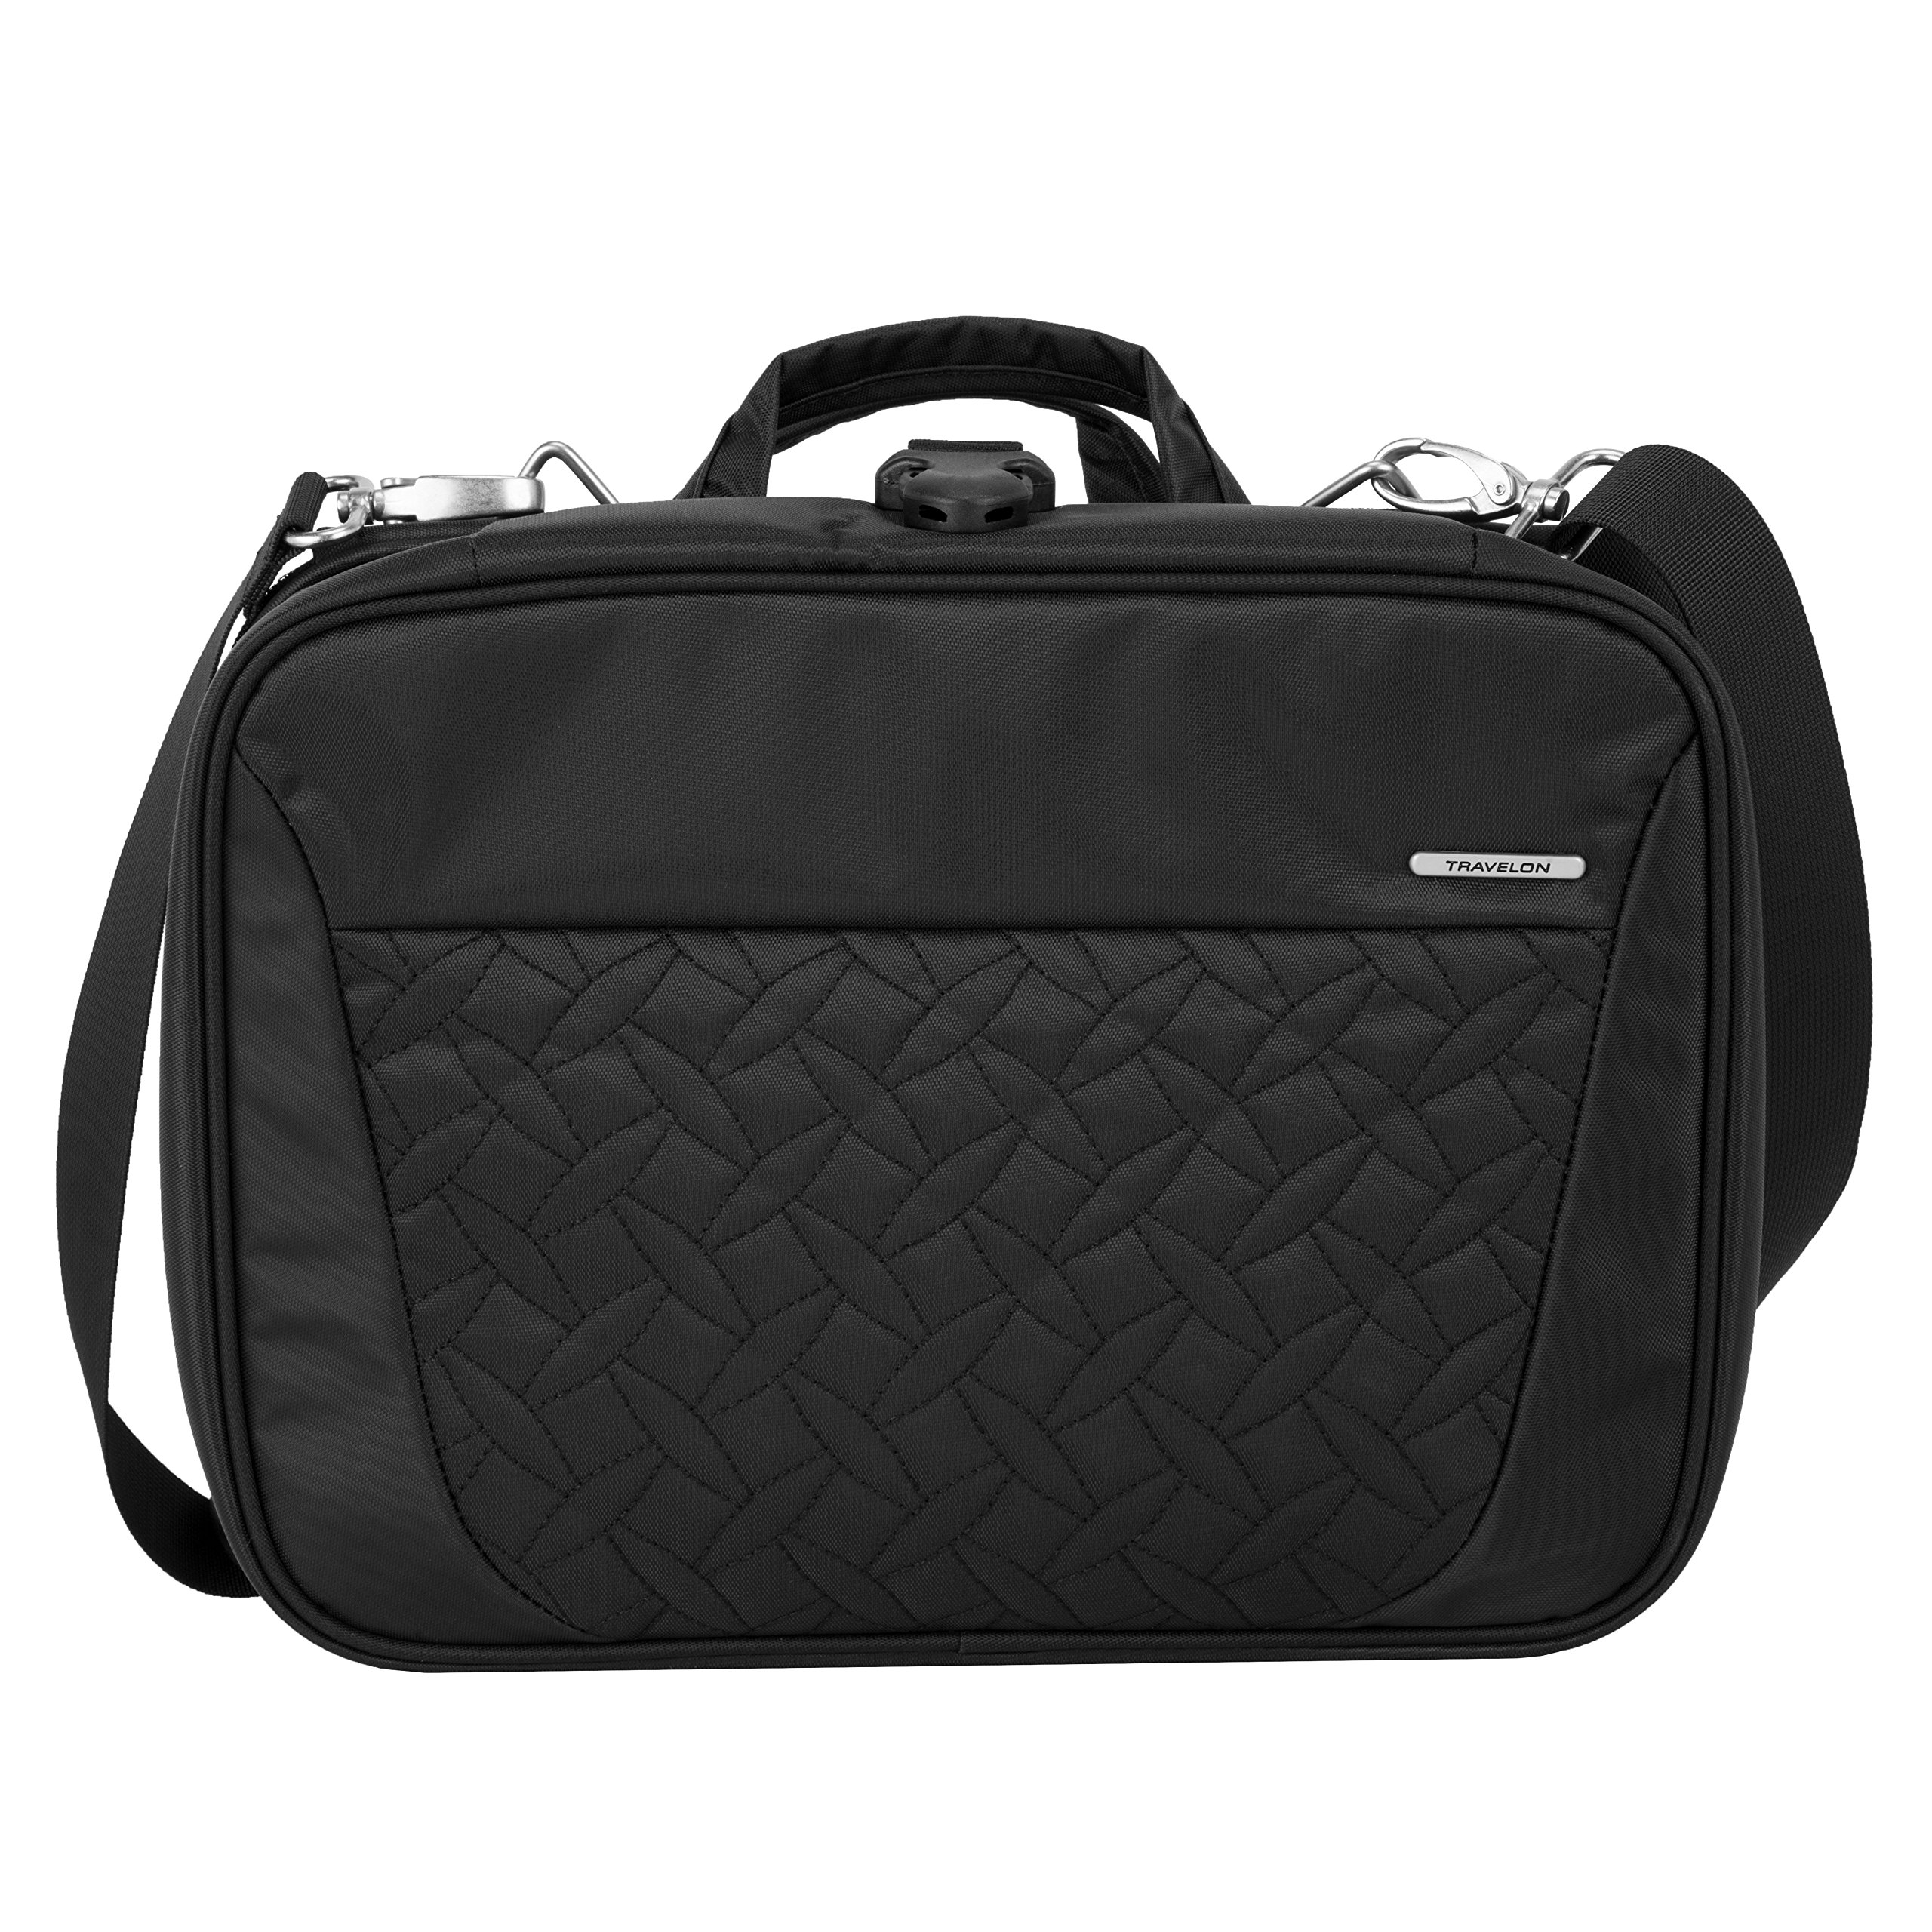 Travelon Total Toiletry Kit, Black, One Size by Travelon (Image #1)